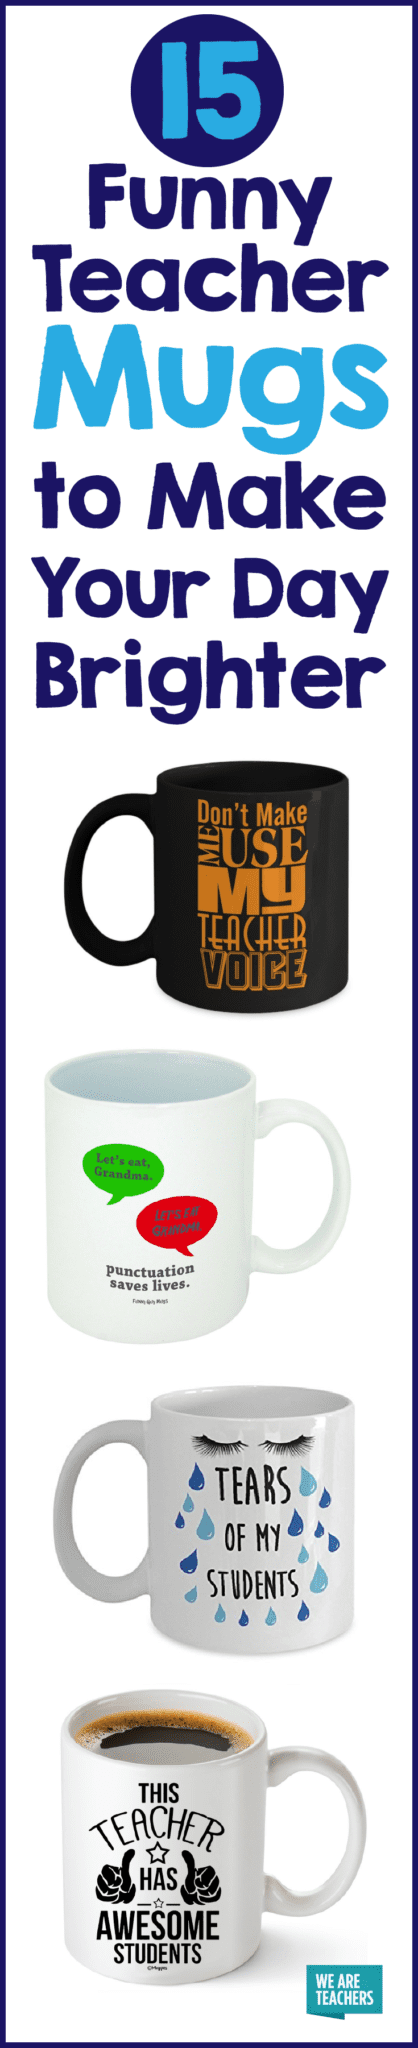 c7b24731a0d Awesome Students - 15 Funny Teacher Mugs. http://amzn.to/2nvFfjQ